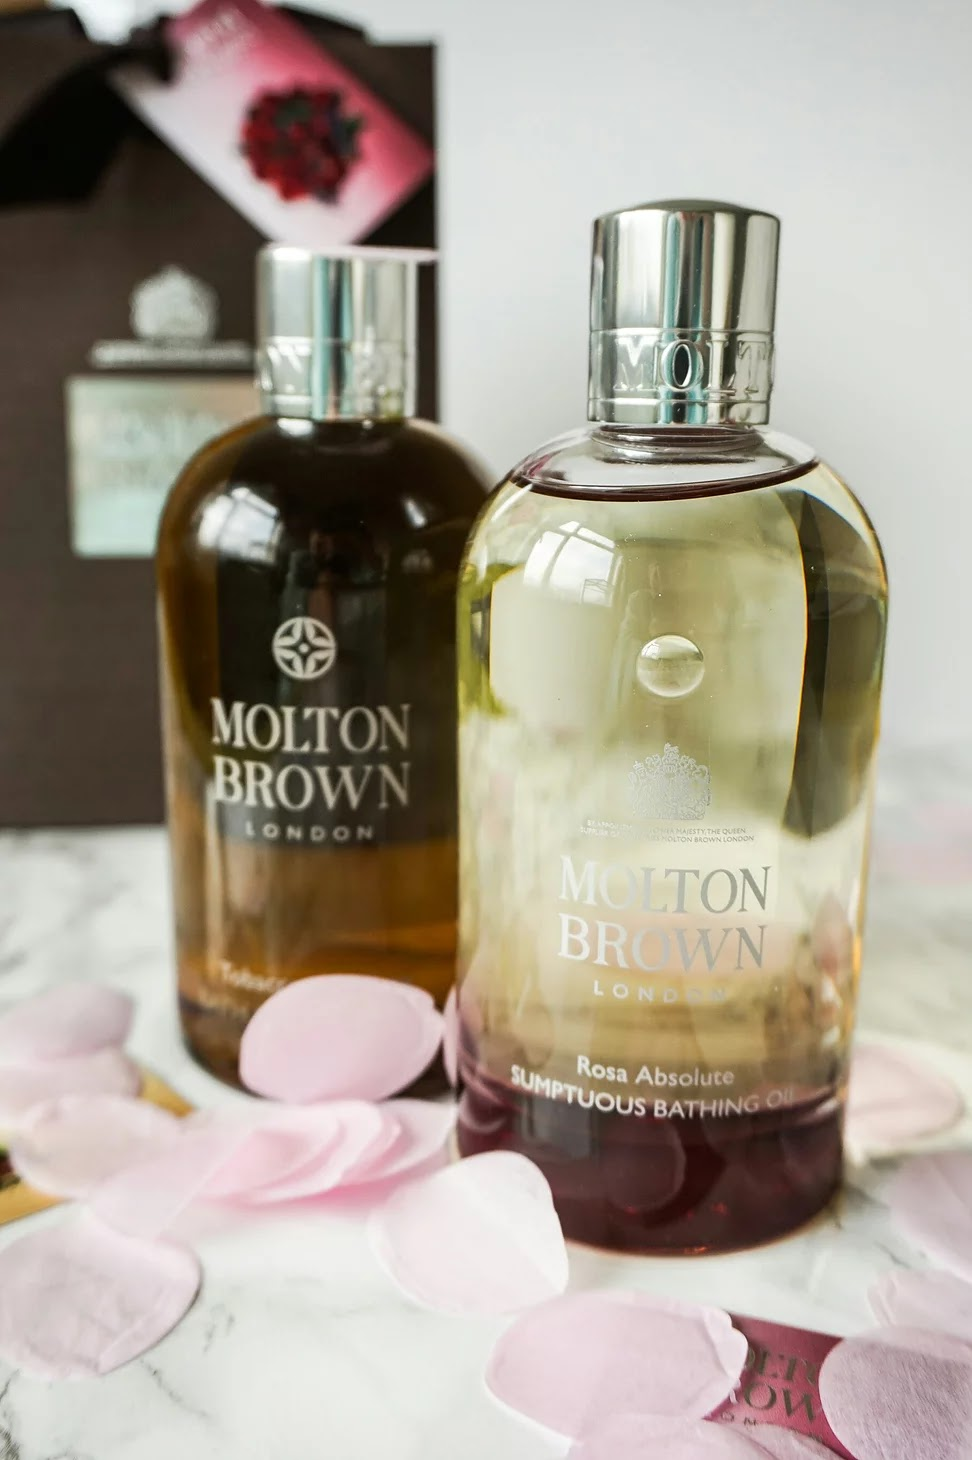 Molton Brown rose absolute and tobacco absolute bottles covered in confetti